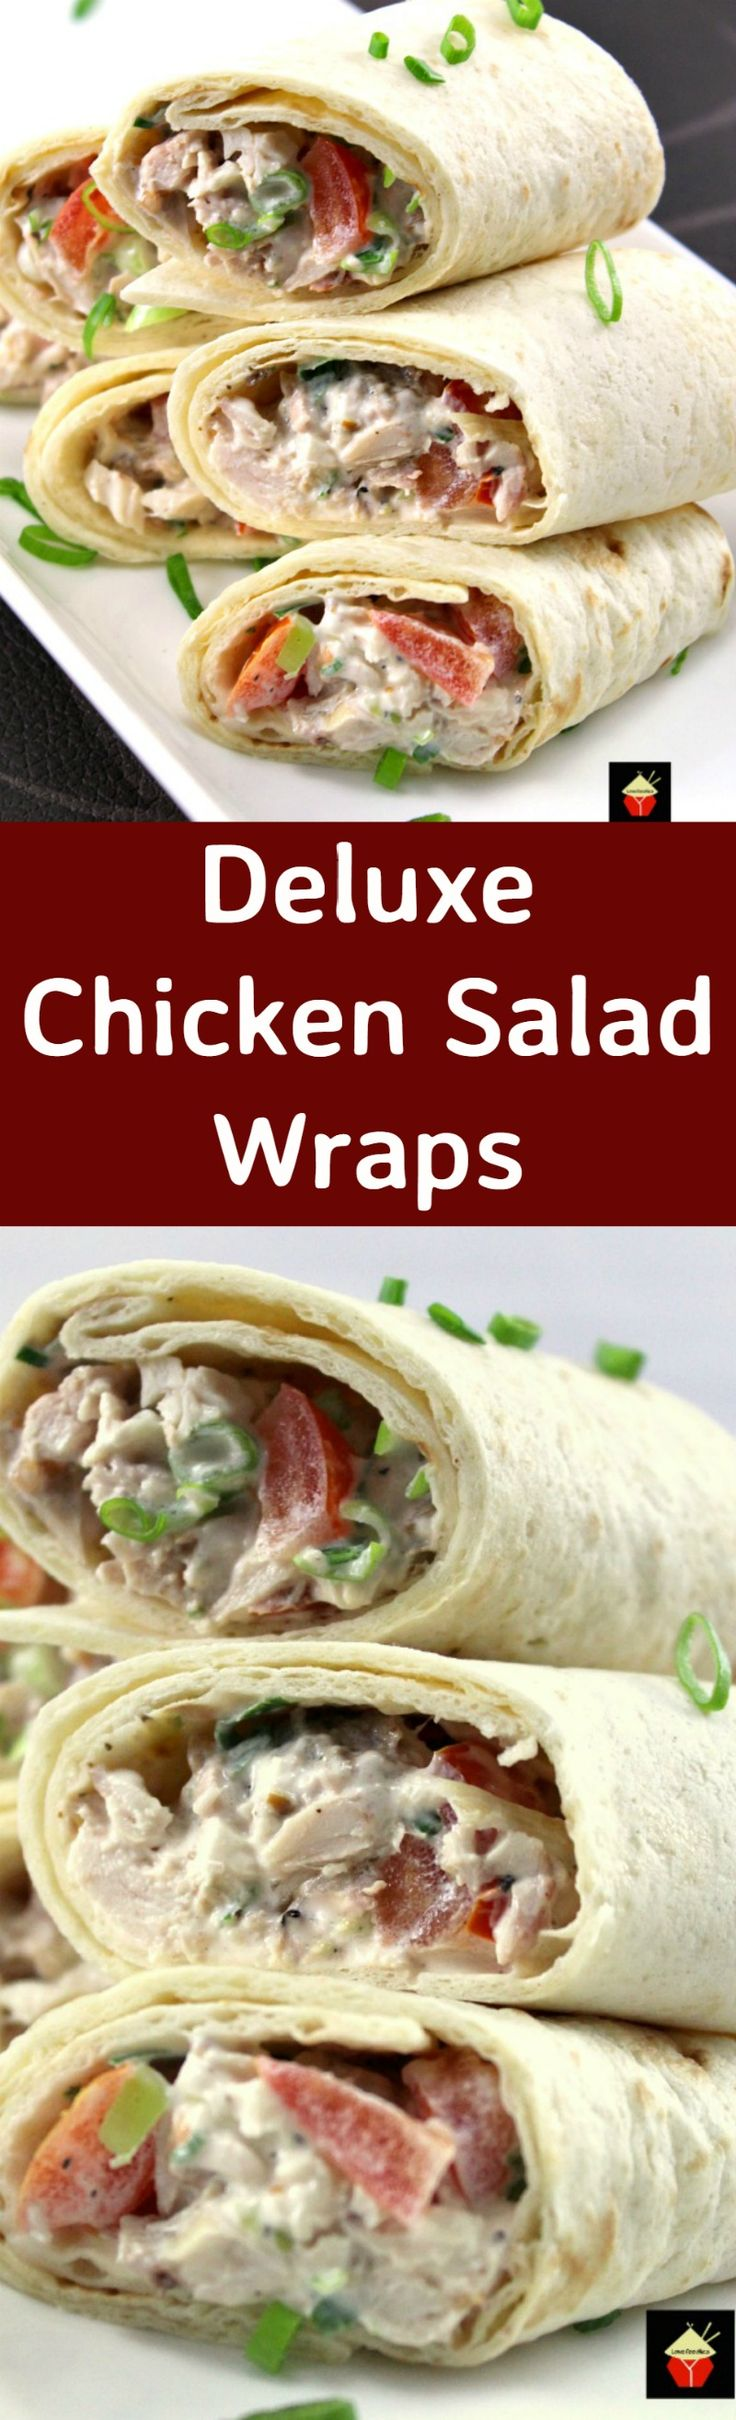 Deluxe Chicken & Bacon Salad Wraps. These little wraps are great for parties, lunches, suppers, or any time! It's a great way to use up left over chicken (or turkey), and the recipe is nice and easy, with no fuss. Delicious!  | Lovefoodies.com